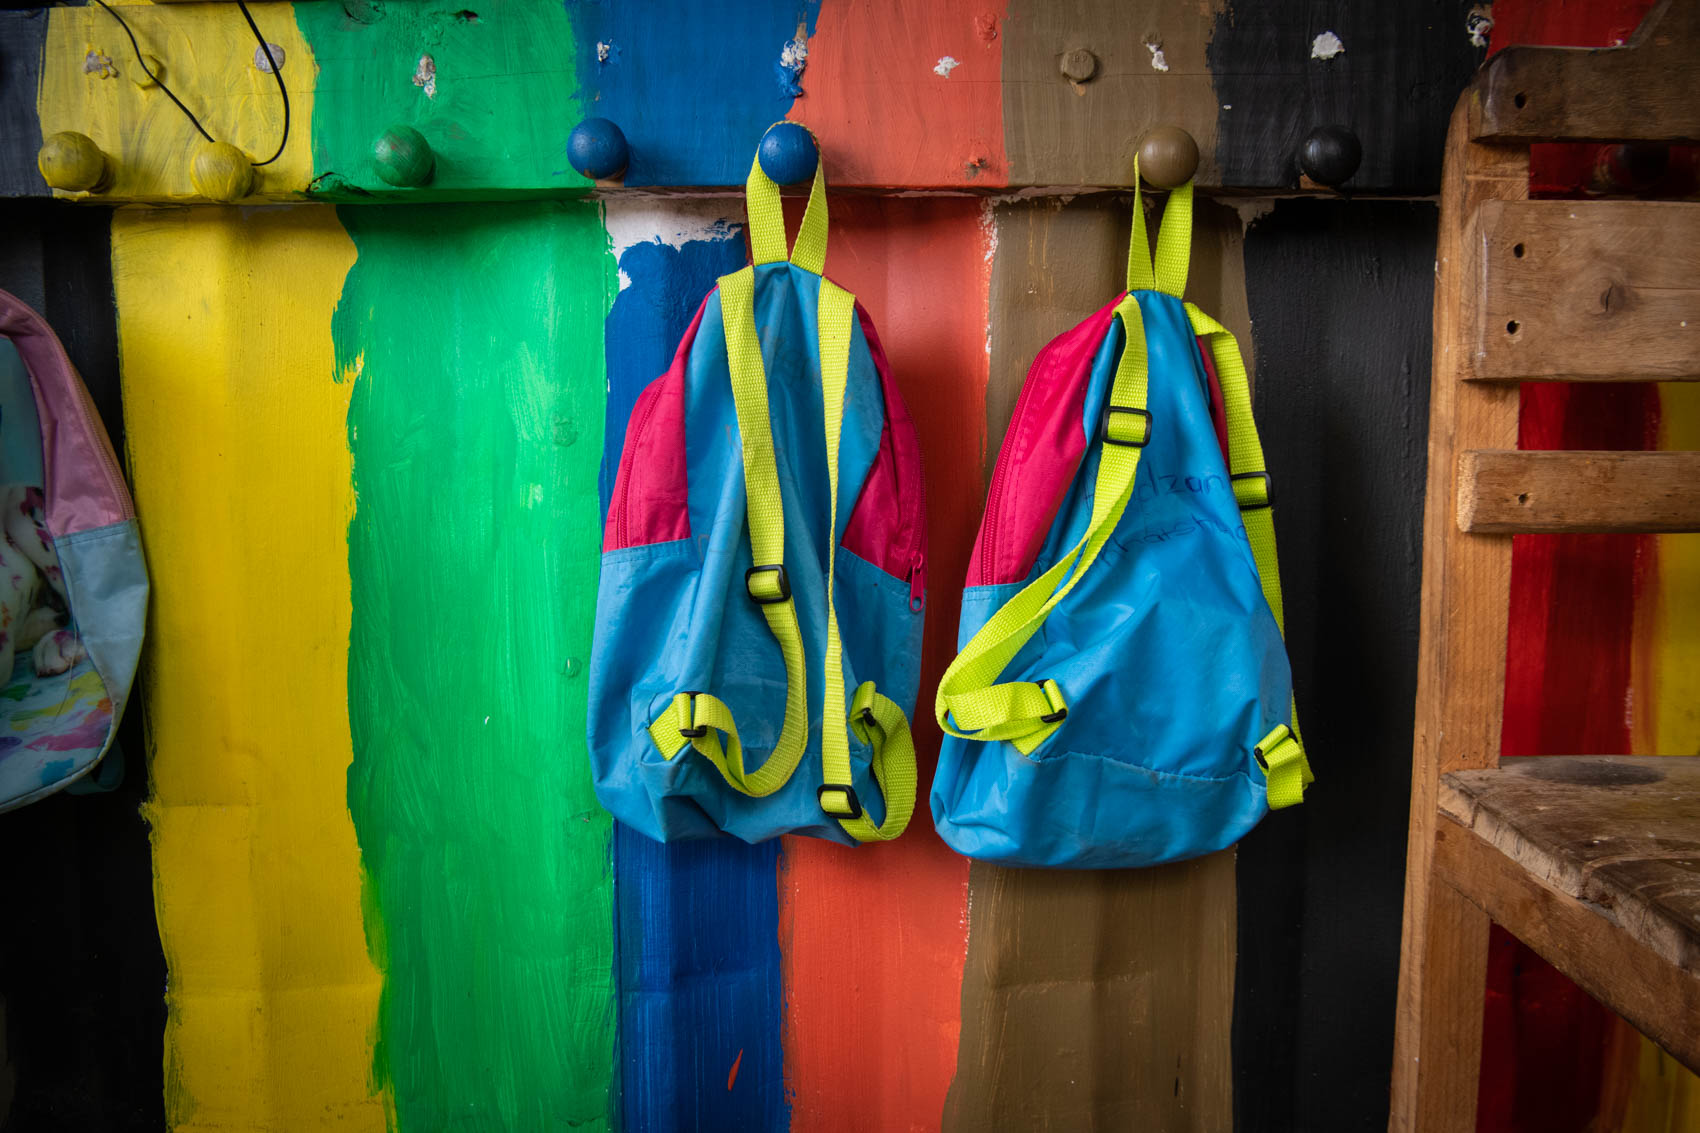 Two children backpacks hanging against a colourful wooden wall